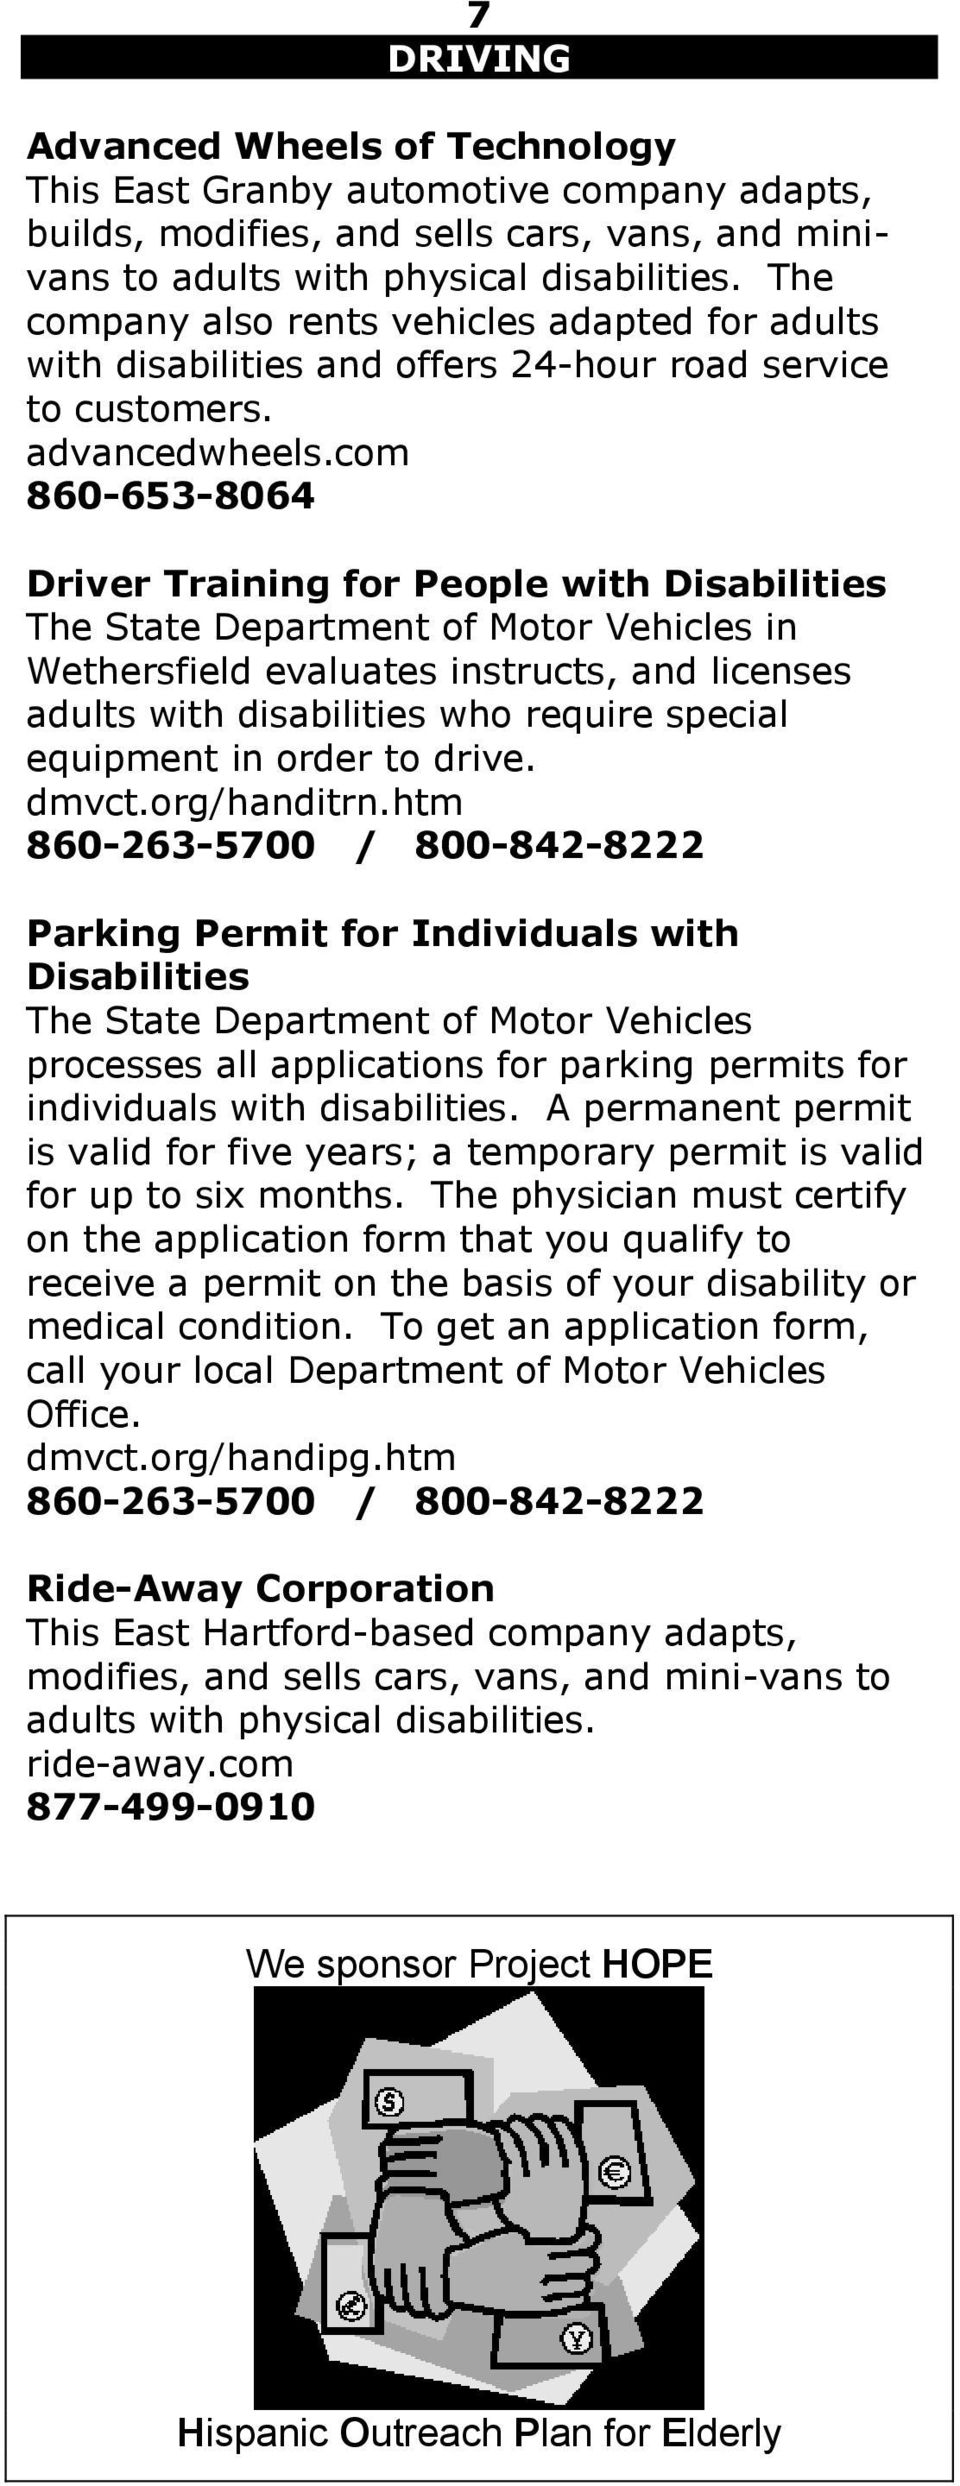 com 860-653-8064 Driver Training for People with Disabilities The State Department of Motor Vehicles in Wethersfield evaluates instructs, and licenses adults with disabilities who require special